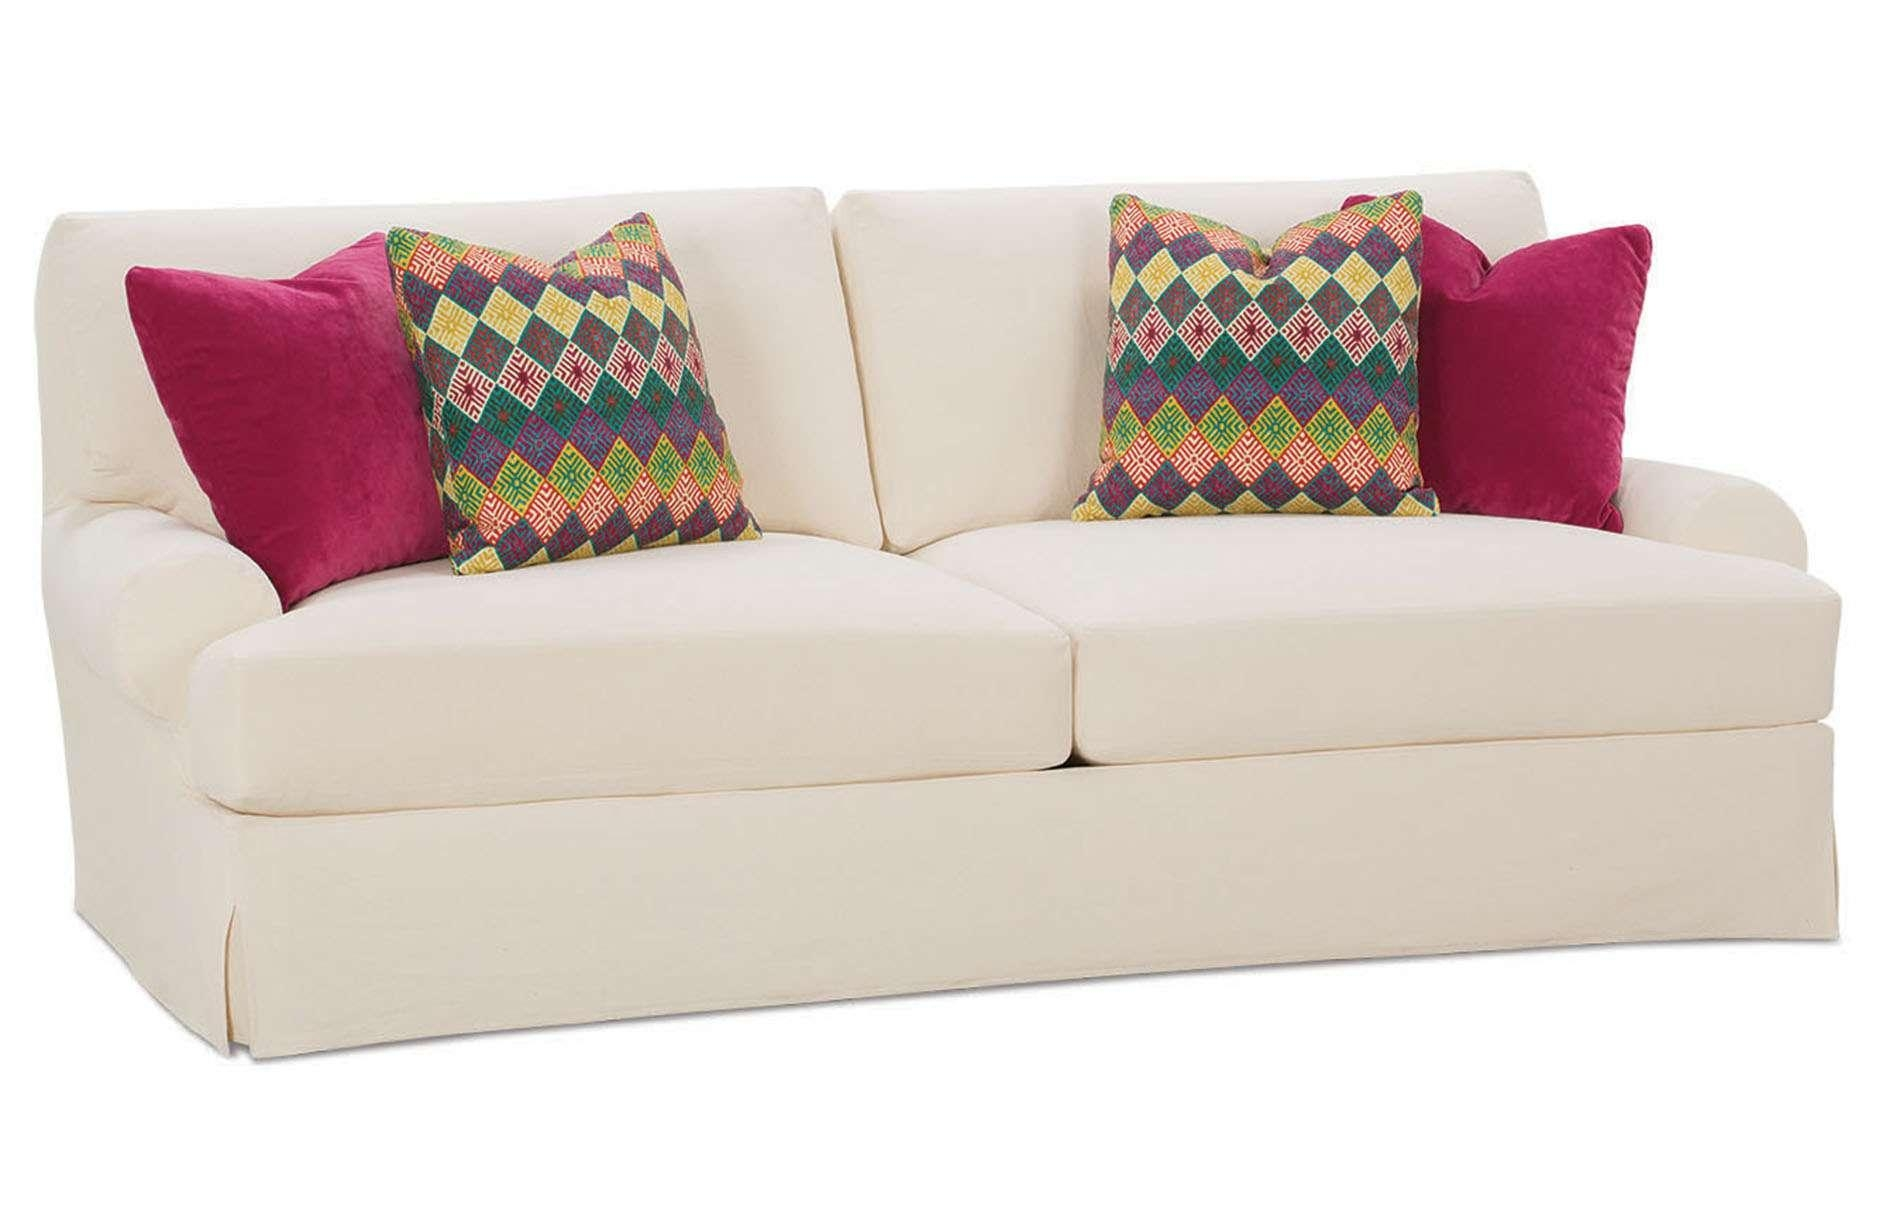 Armless Sofa Slipcover With Concept Photo 15746 | Kengire Pertaining To Armless Sofa Slipcovers (View 7 of 20)